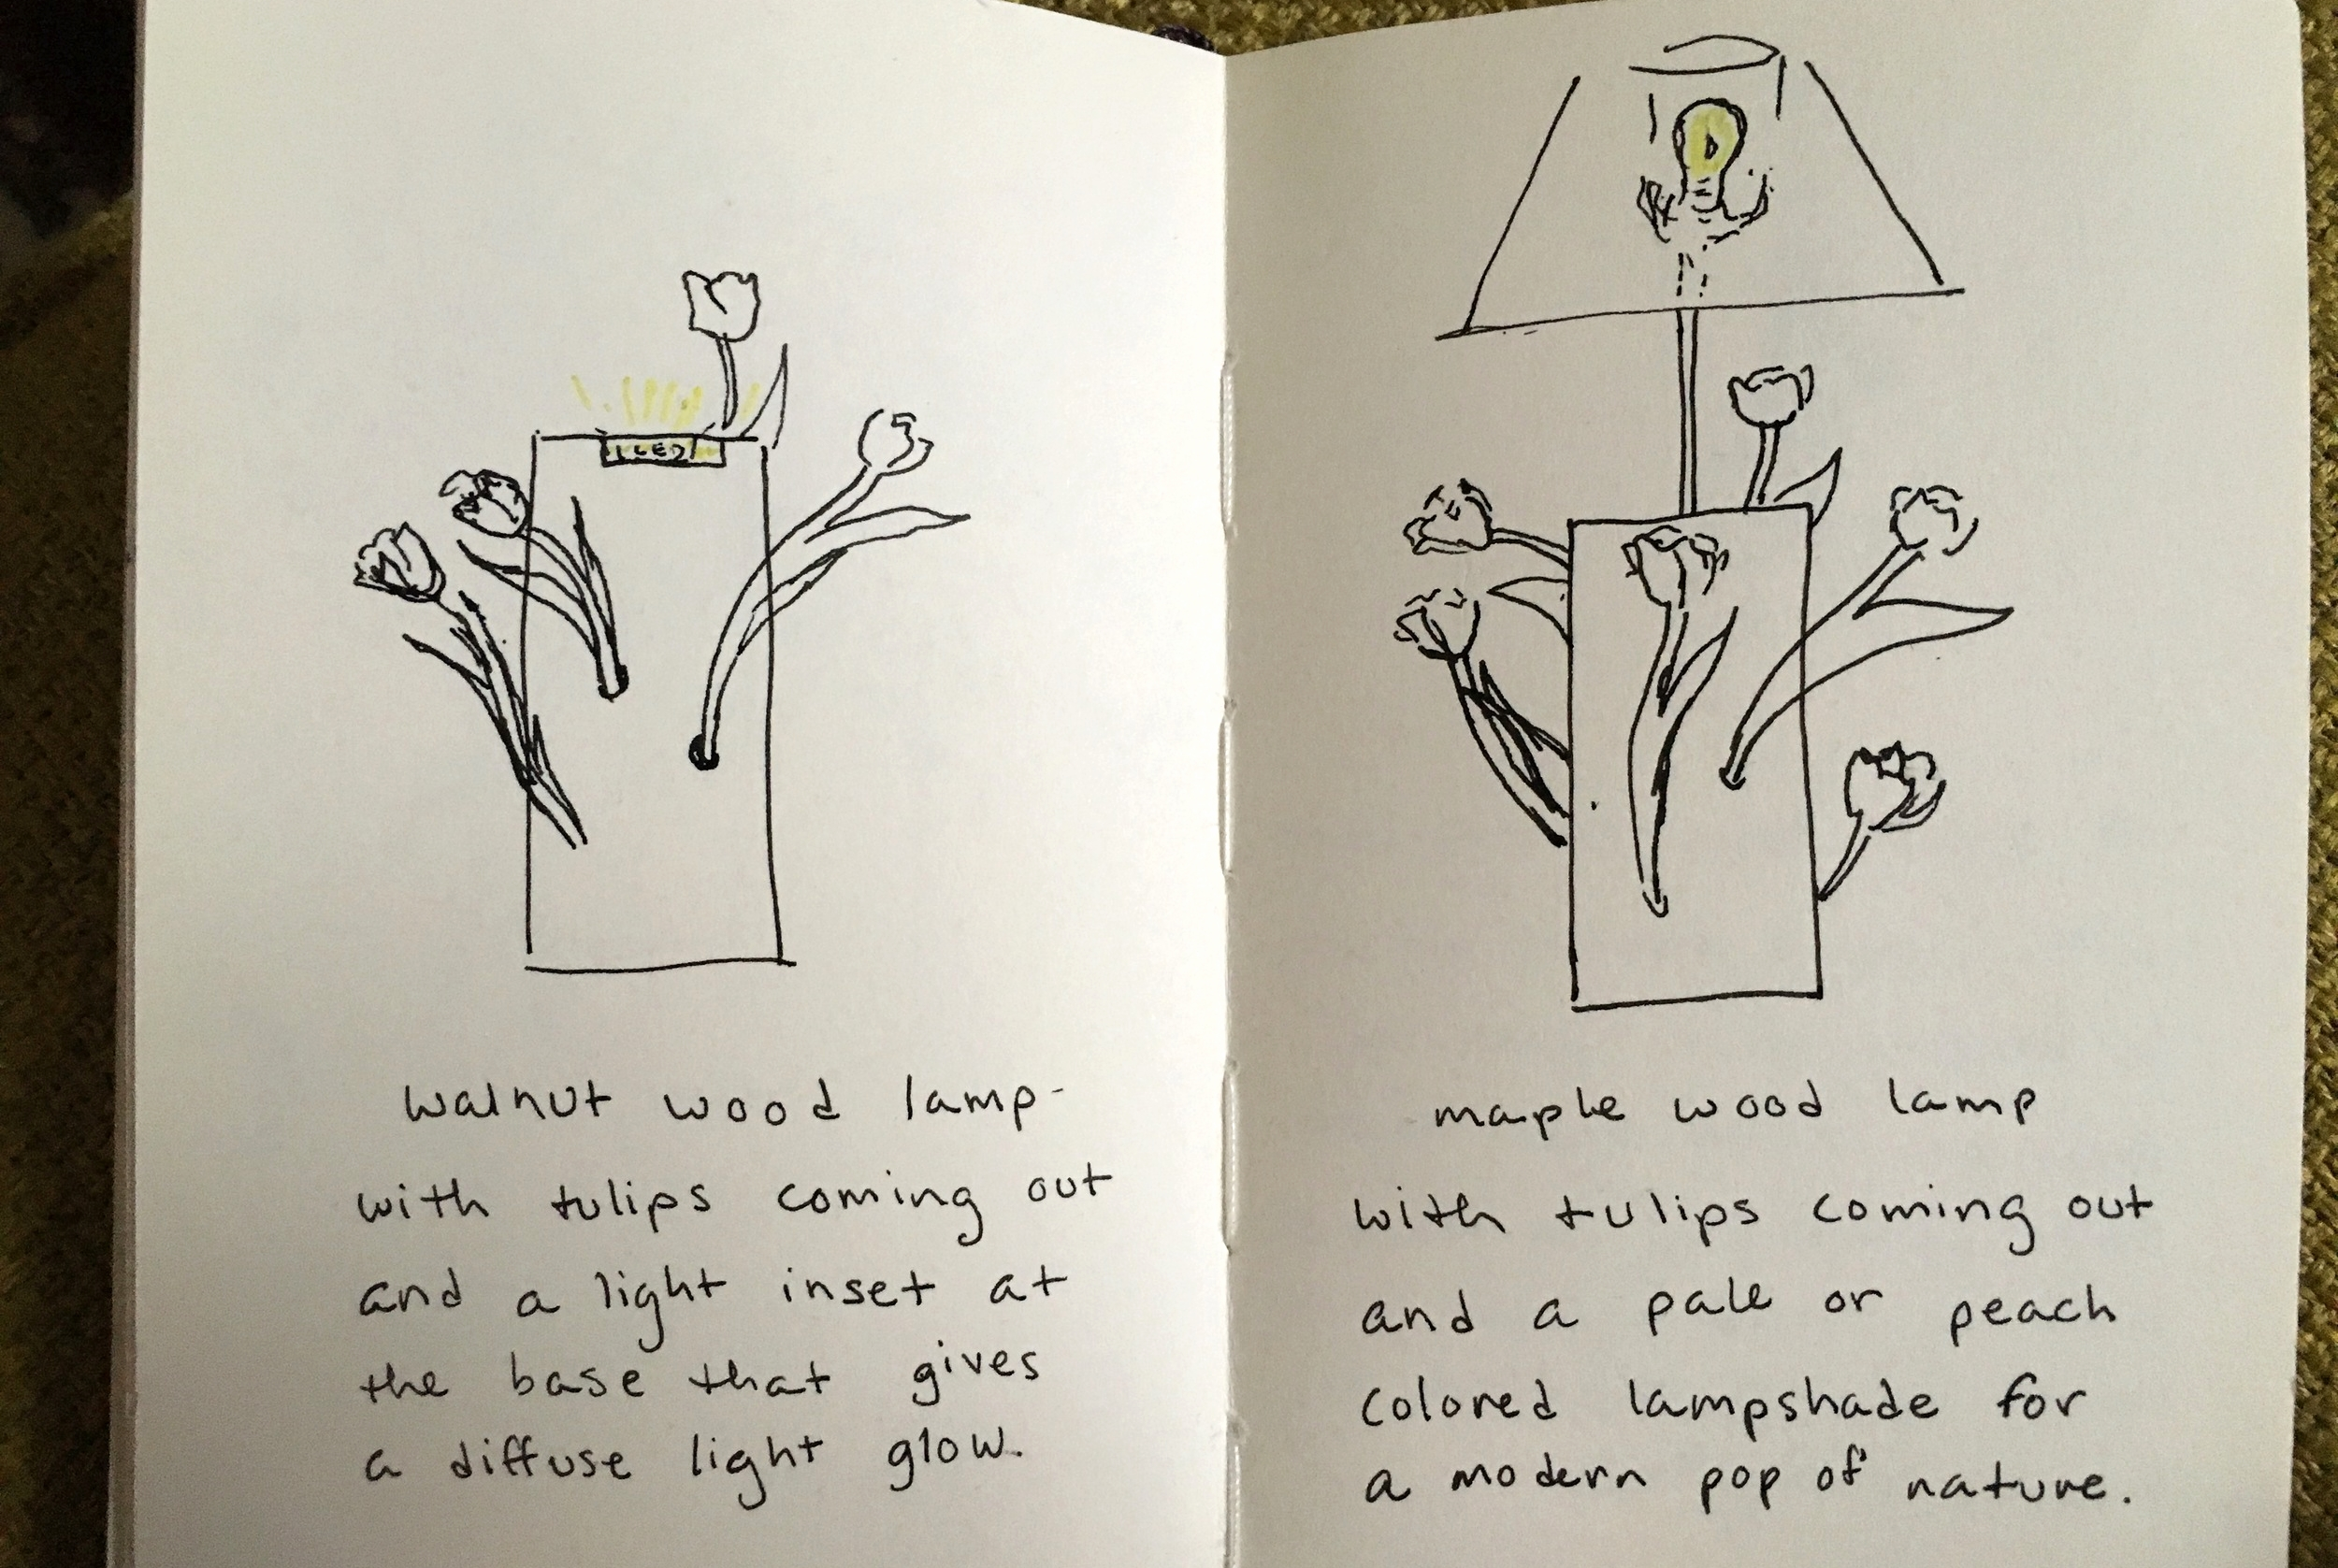 Sketching out some lighting ideas.